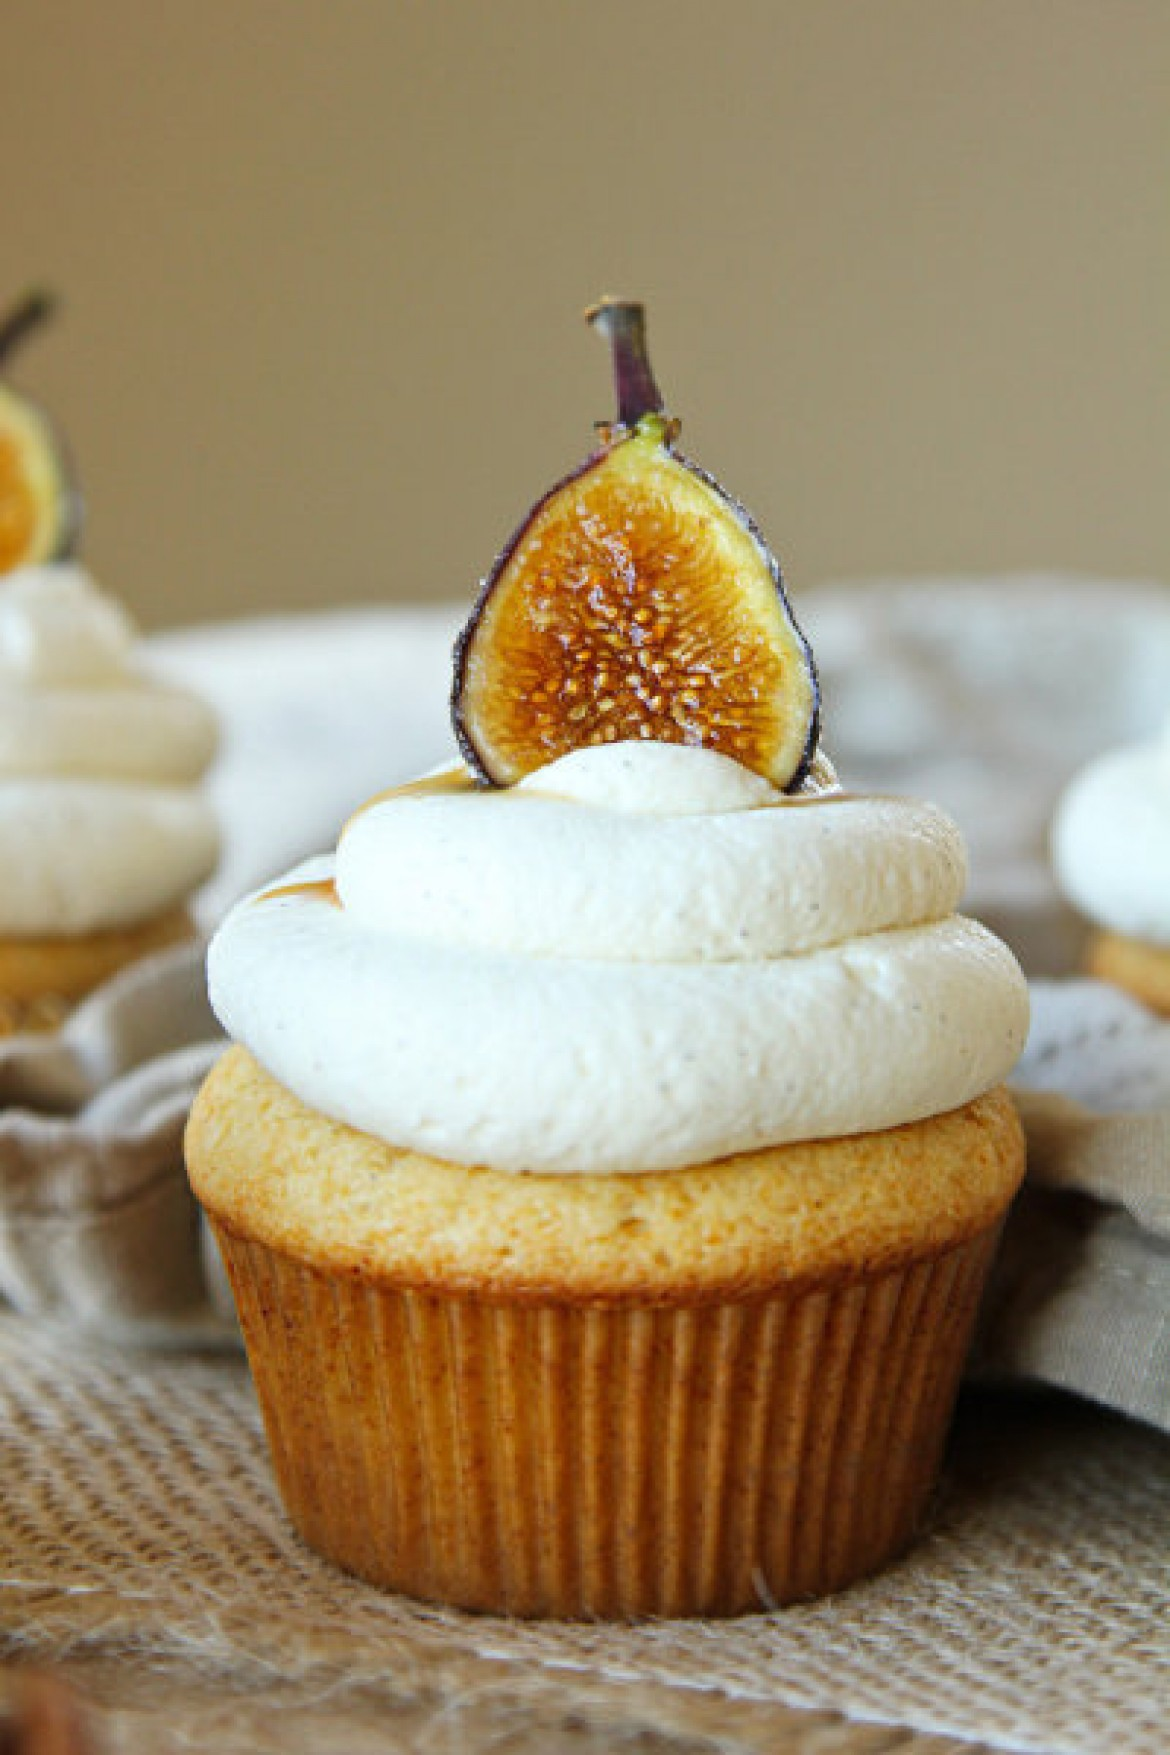 Honey Cupcakes with Mascarpone Frosting - Cupcake Fanatic